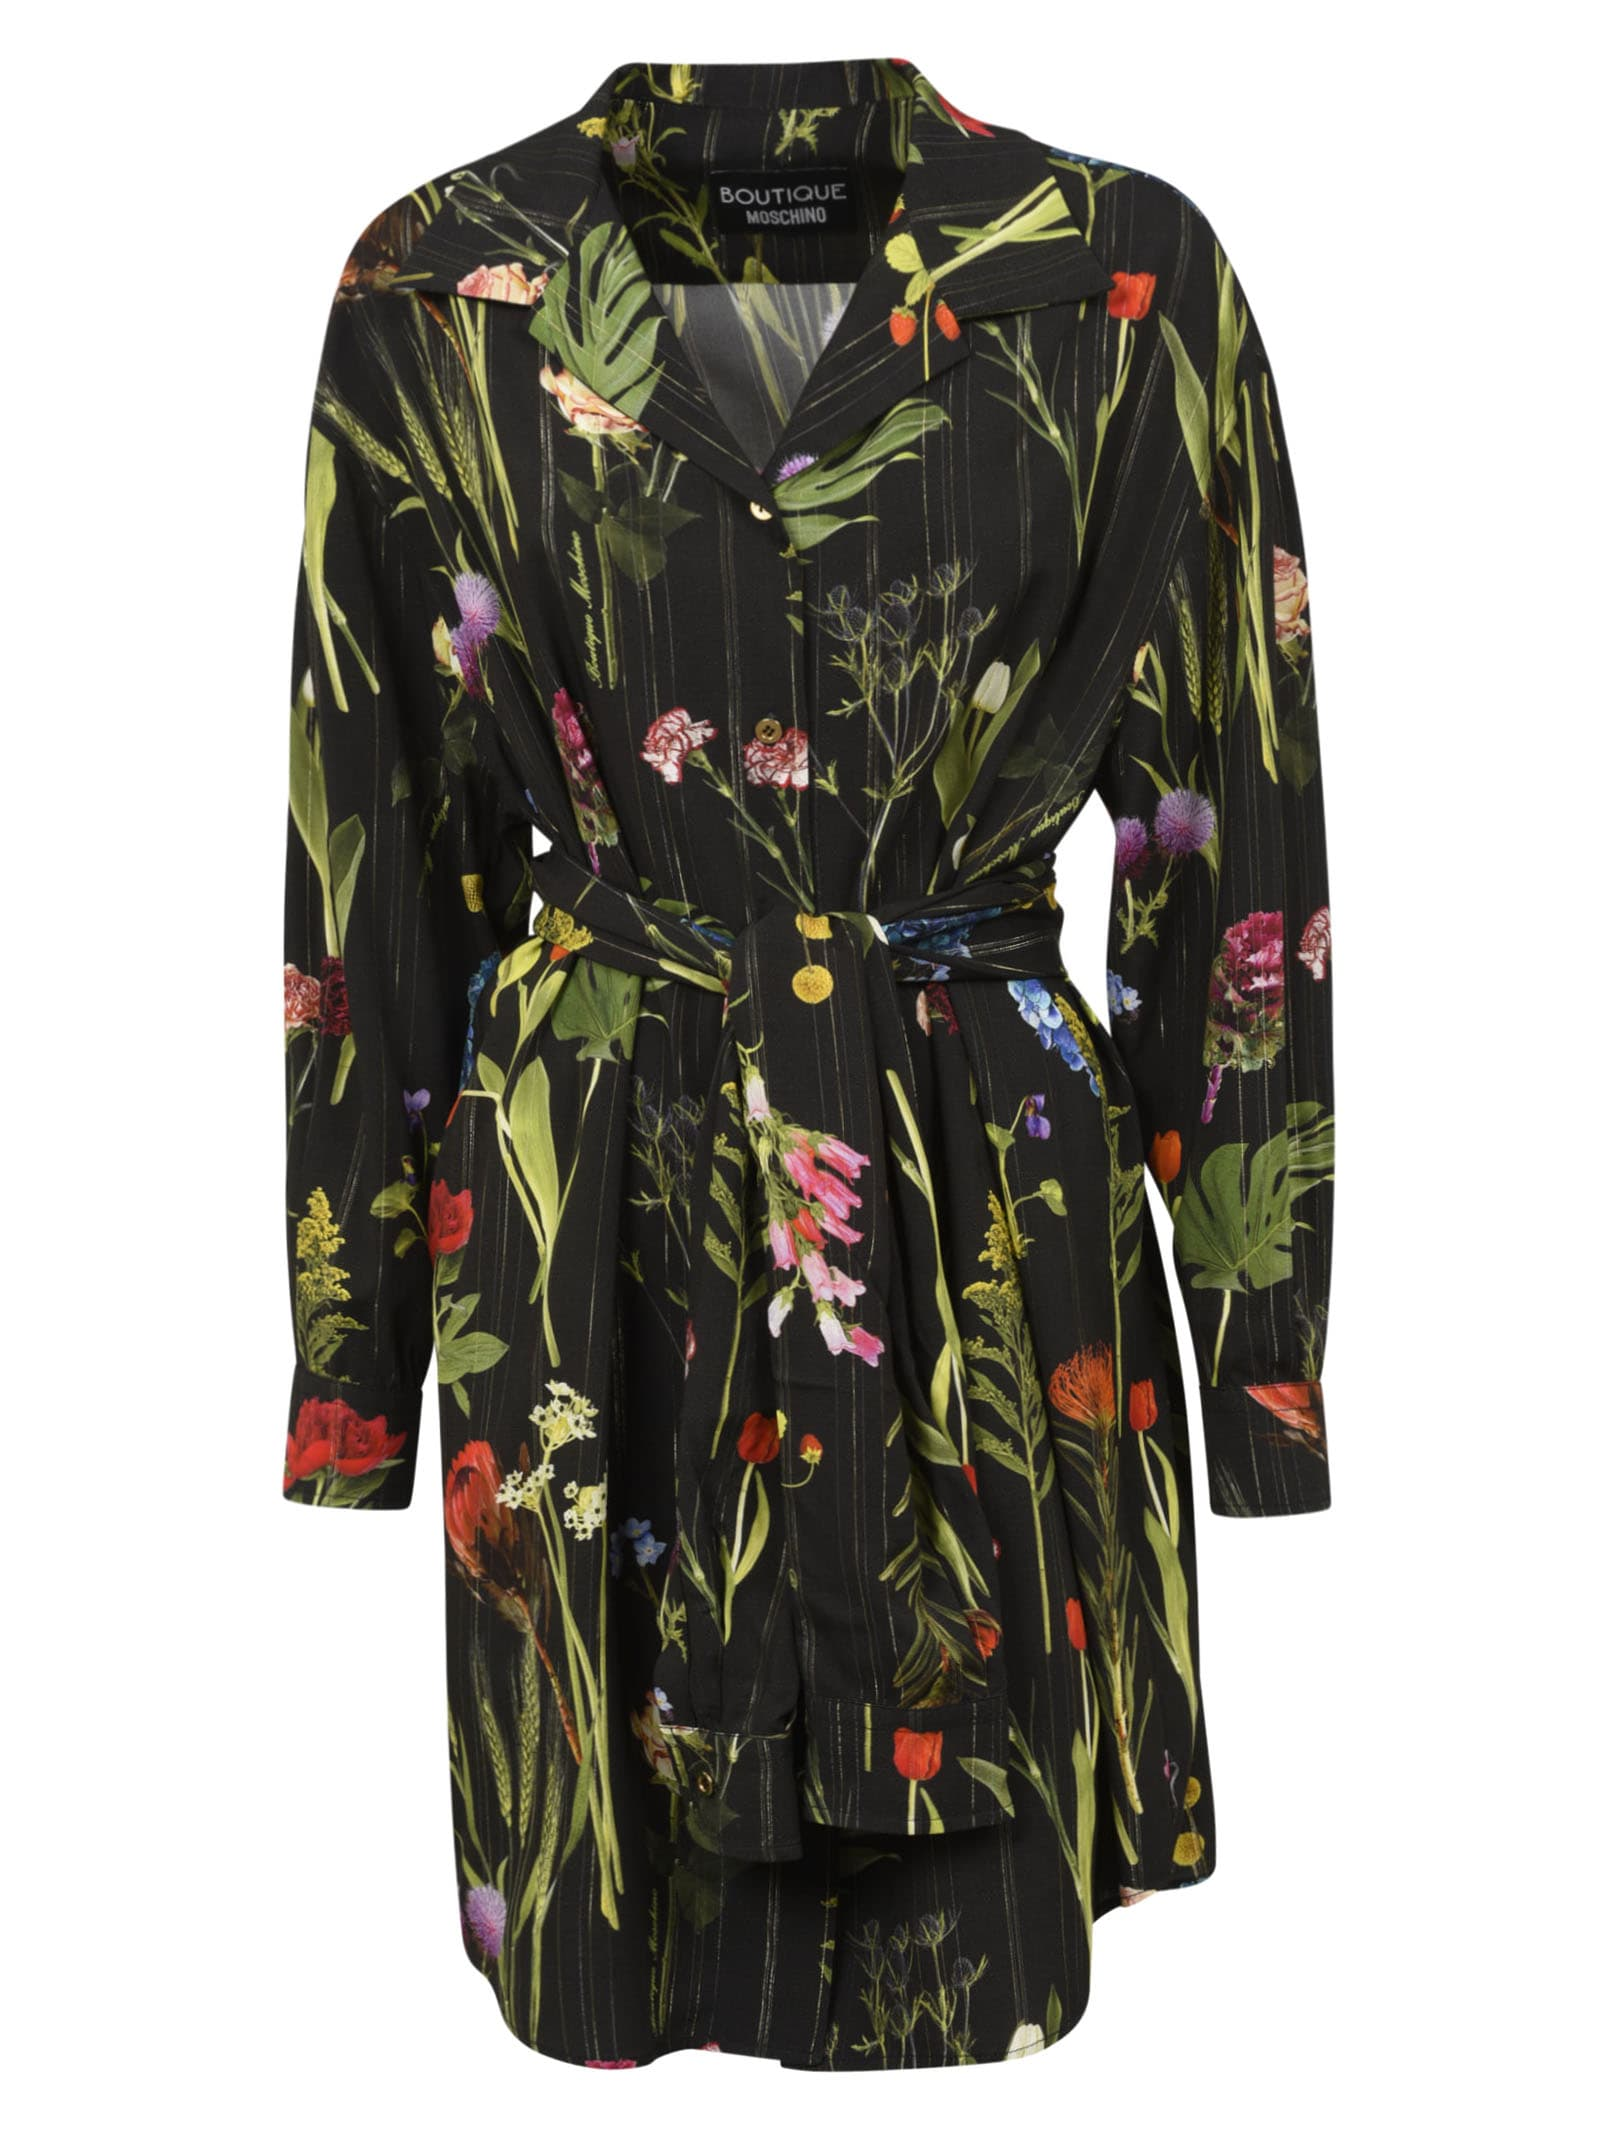 Boutique Moschino Tie-waist Floral Printed Dress